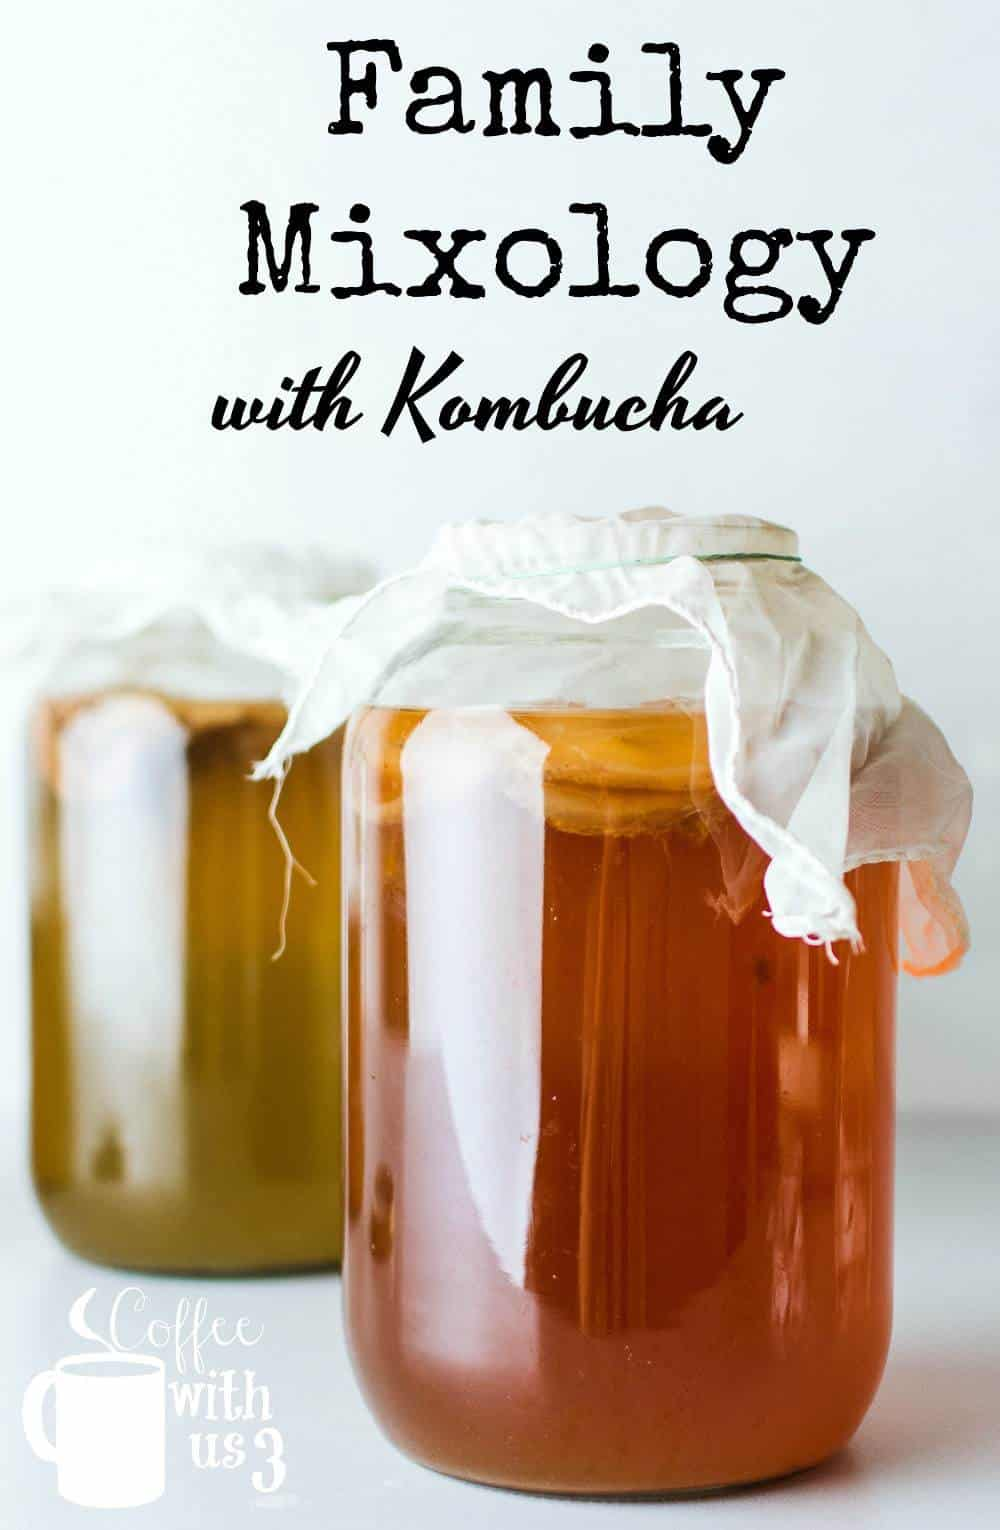 Family Mixology with Kombucha can be a fun way to connect with each other!